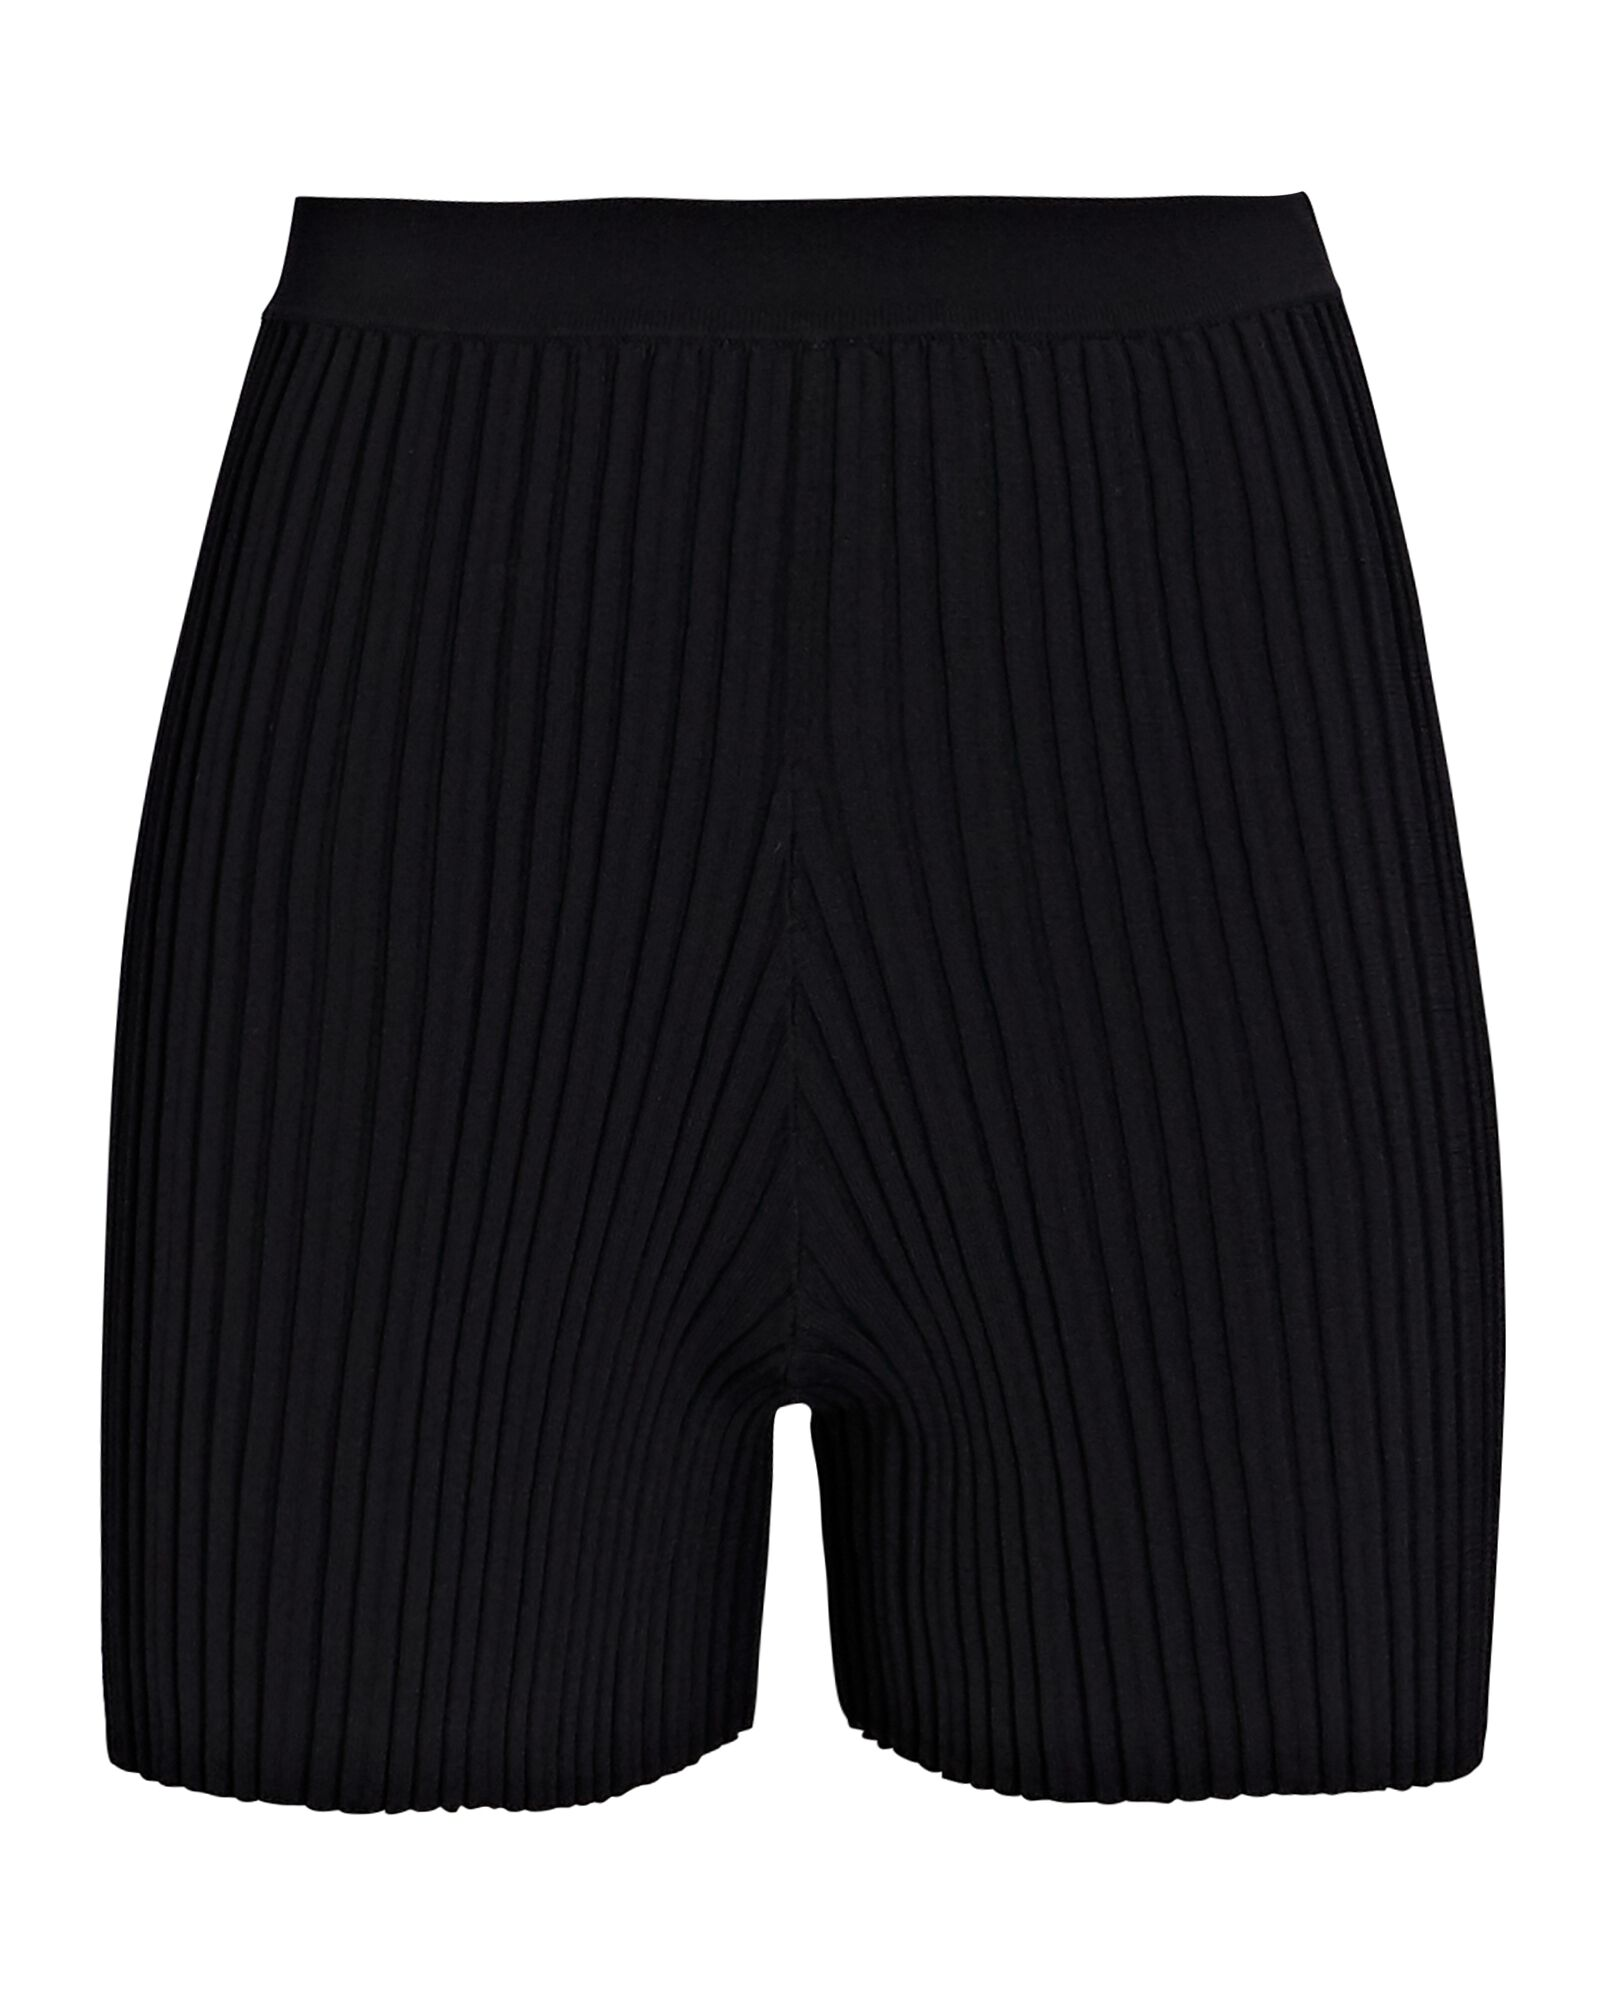 Float Rib Knit Bike Shorts, BLACK, hi-res